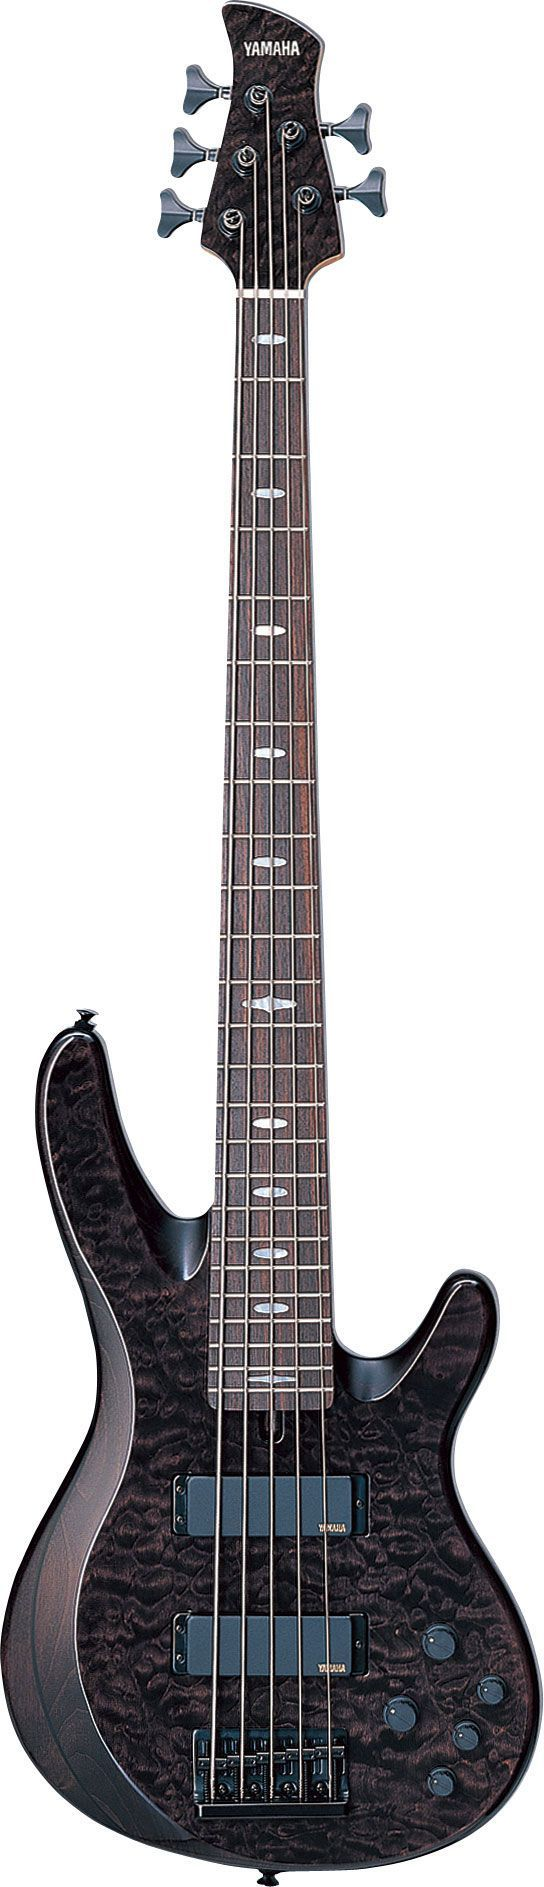 a hugely MOST #POPULAR Re-pin, this ebony Yamaha TRB 5 string bass with beautiful body details. - https://www.pinterest.com/DianaDeeOsborne/basses-of-life/ - Five Strings with a swoop like edge that contains its own swirls, & marble look body that, at close examination, almost looks like detailed bird feathers. A fascinating different bass.